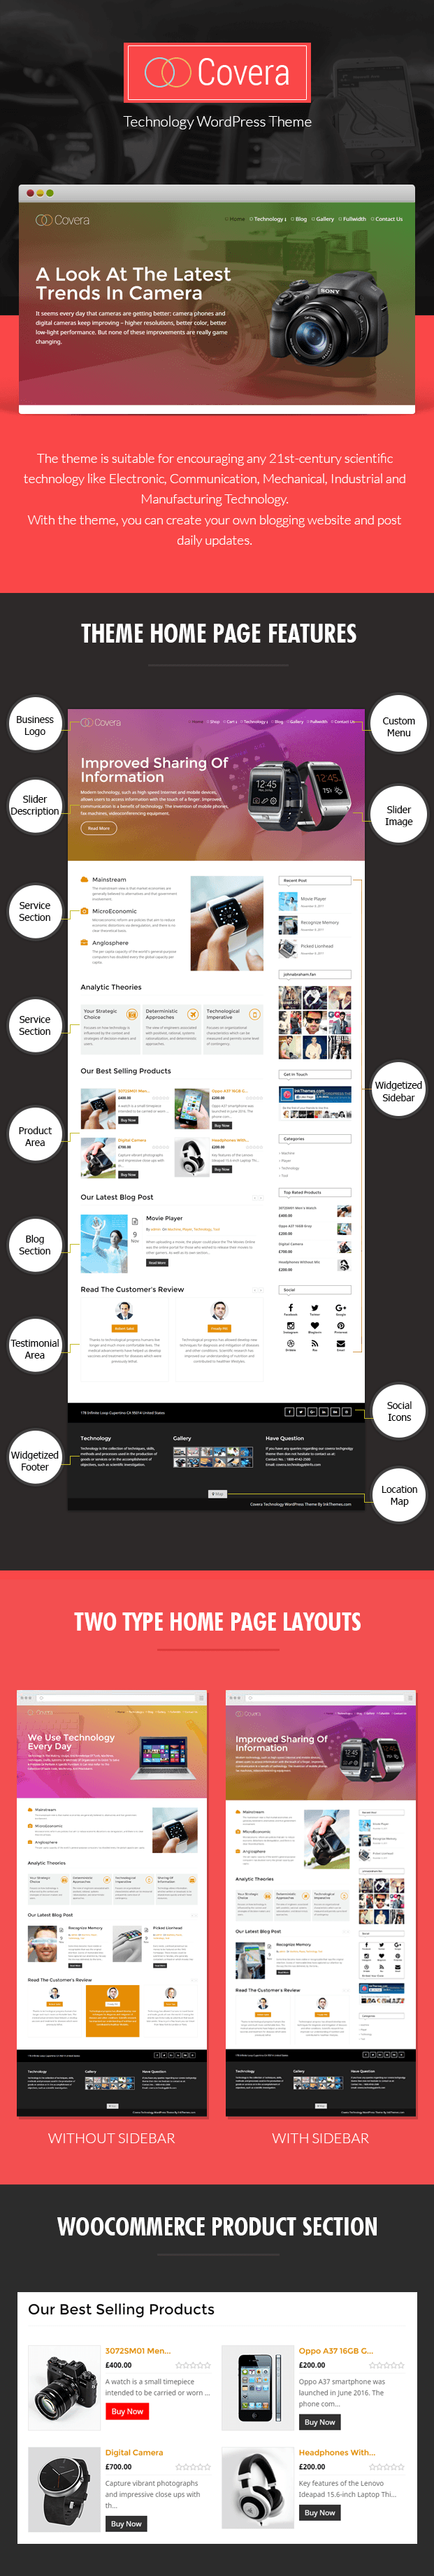 Covera WordPress Theme